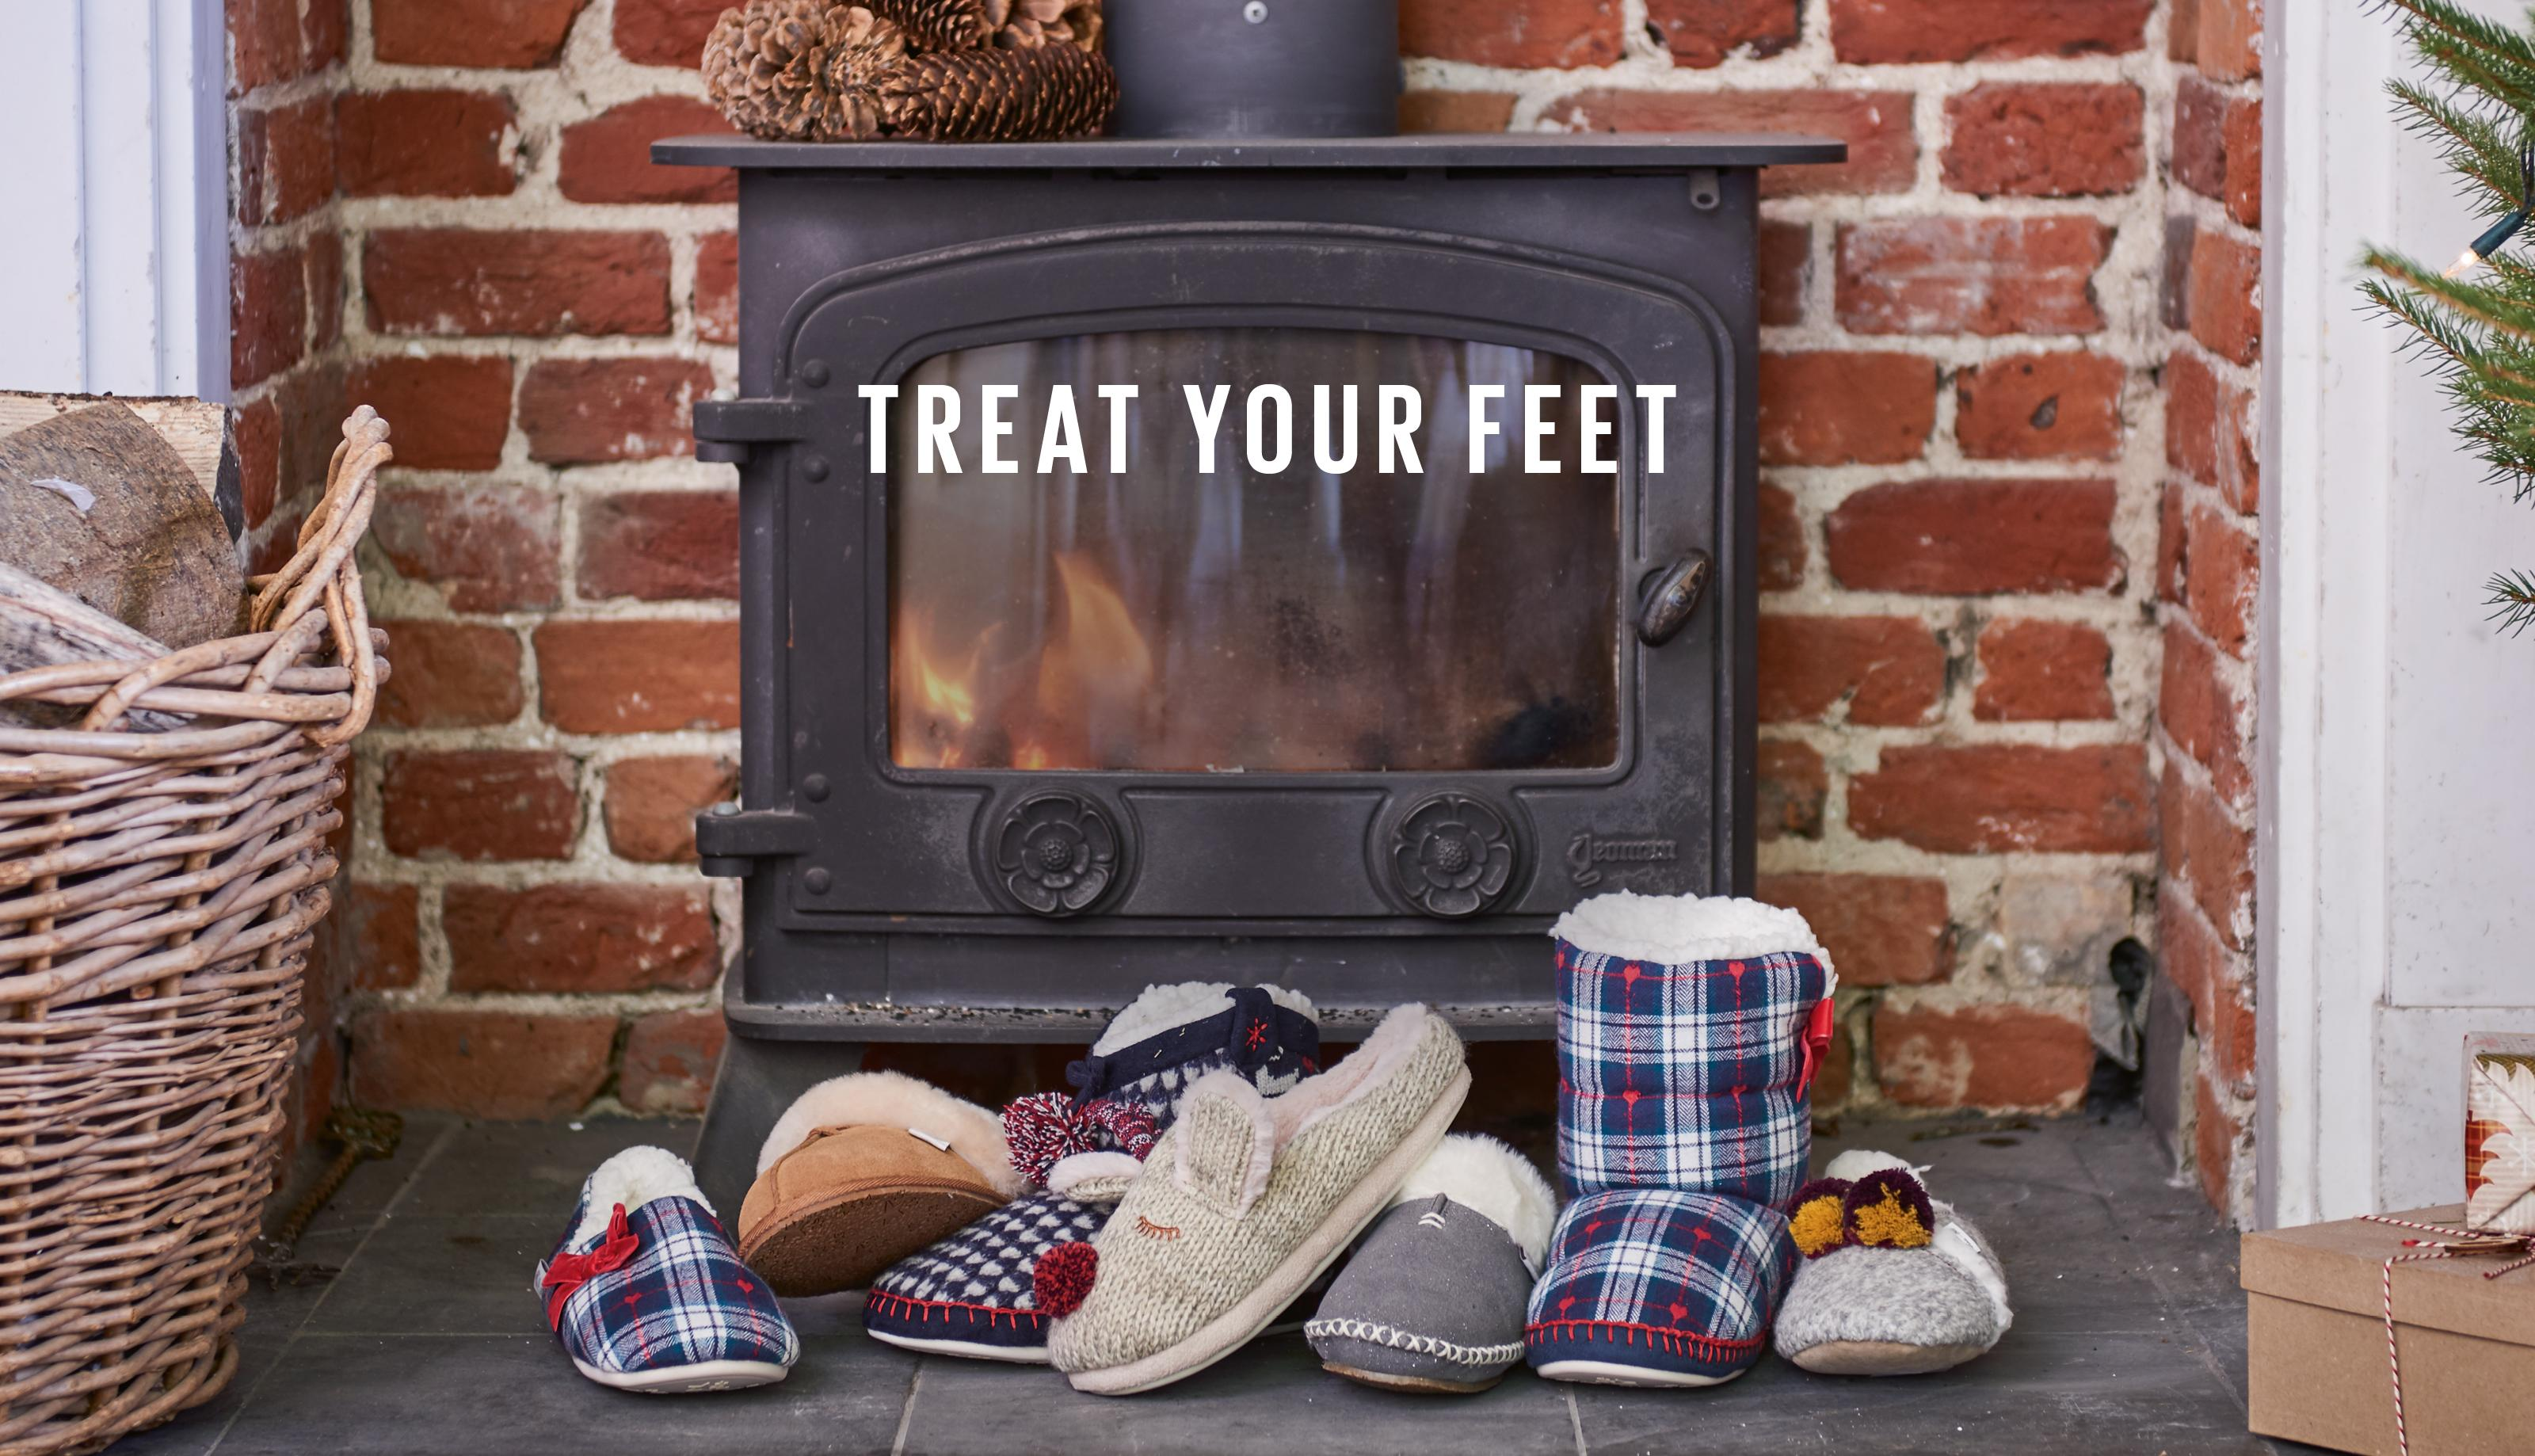 TREAT YOUR FEET: SLIPPERS